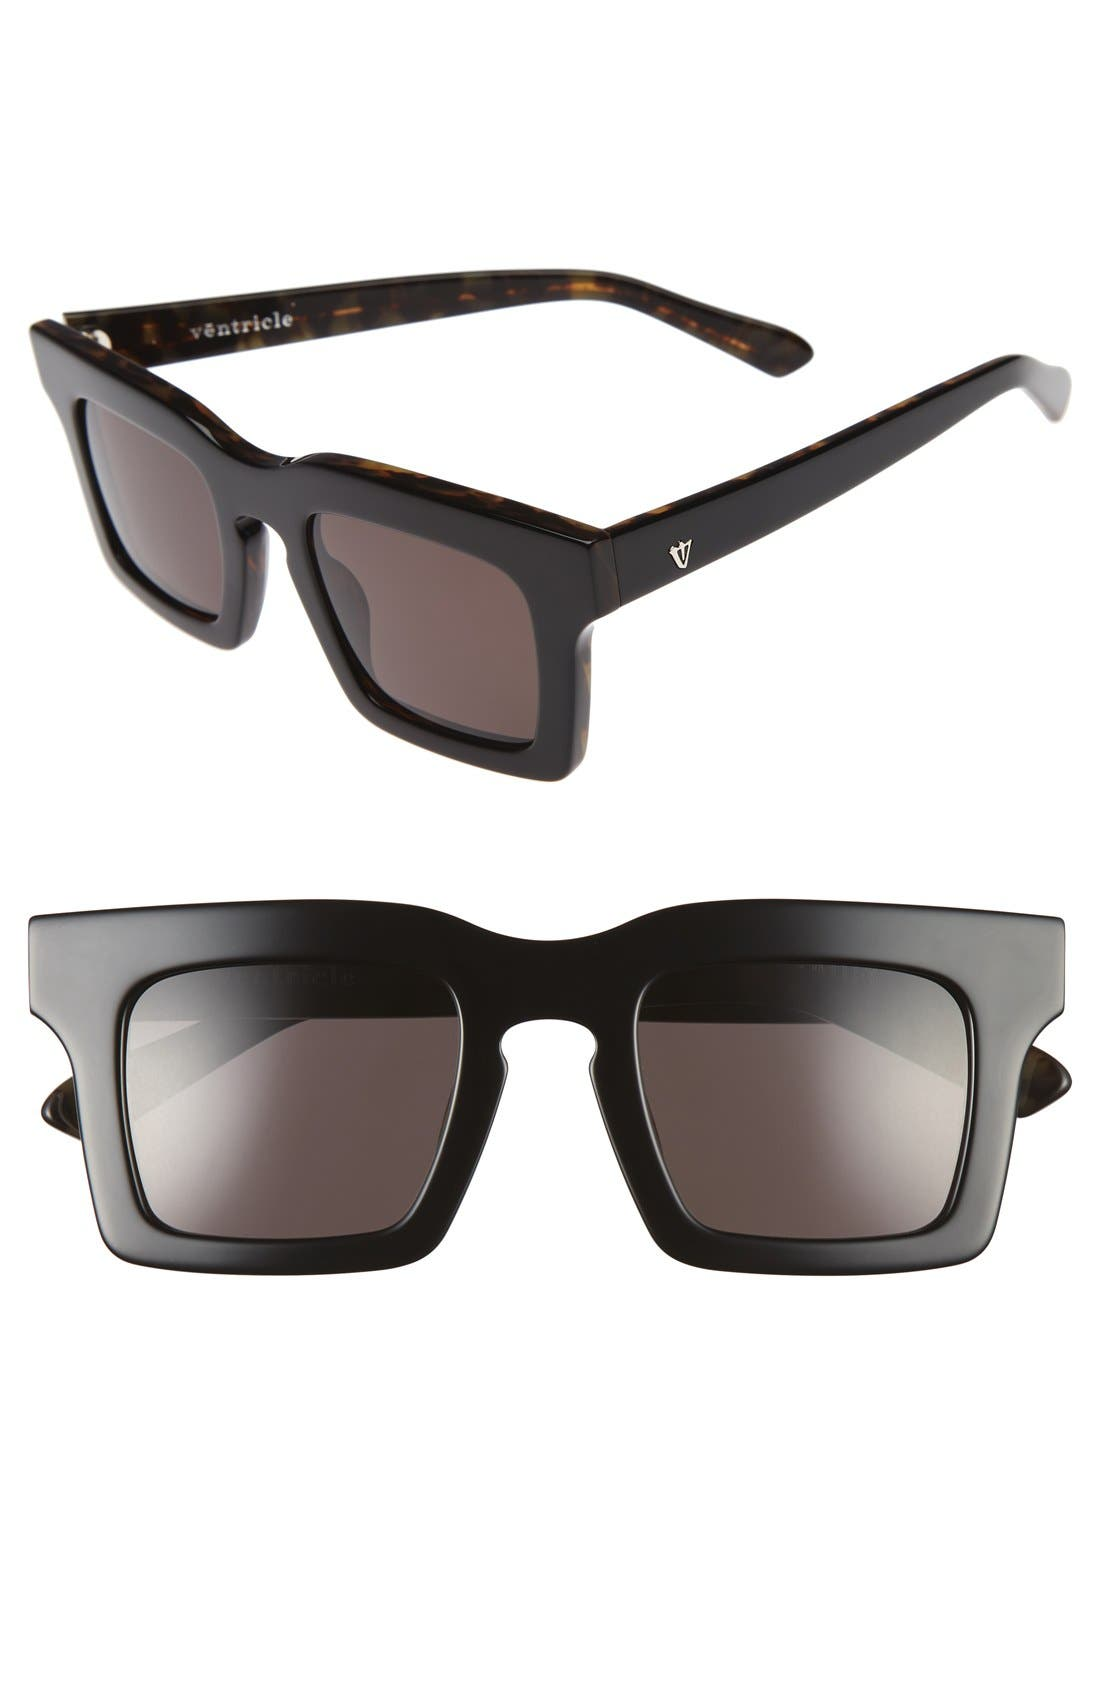 VALLEY Ventricle 50mm Sunglasses